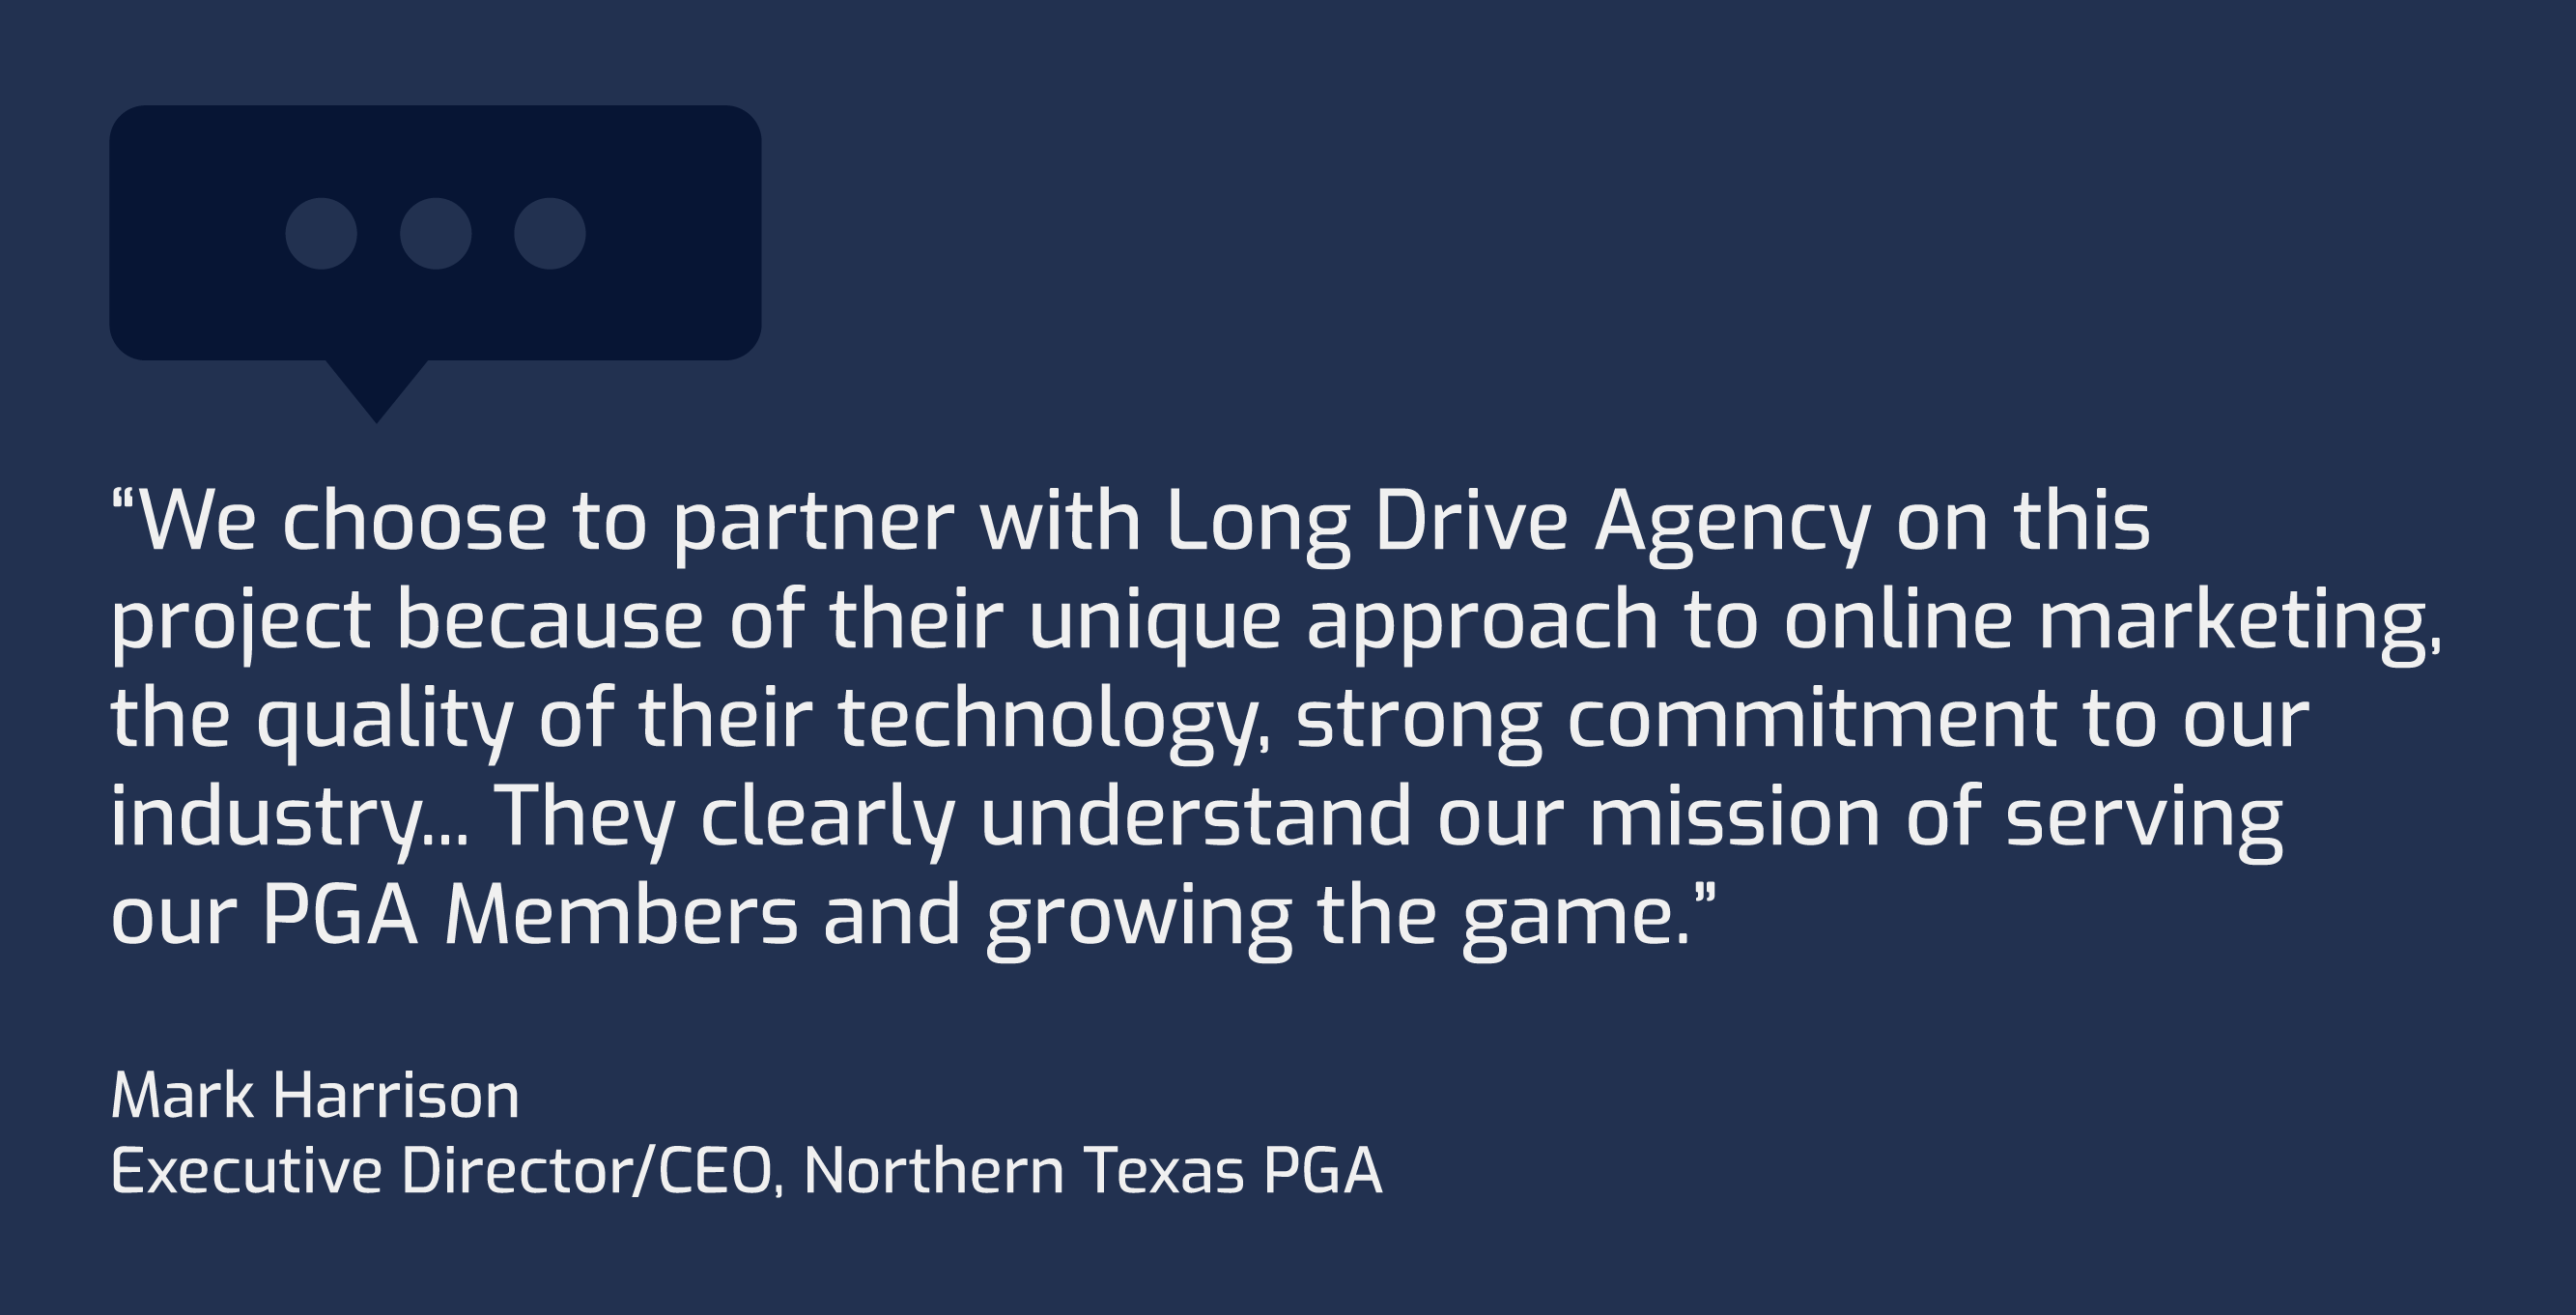 Long Drive Agency, NTPGA Partnership Quote Mark Harrison